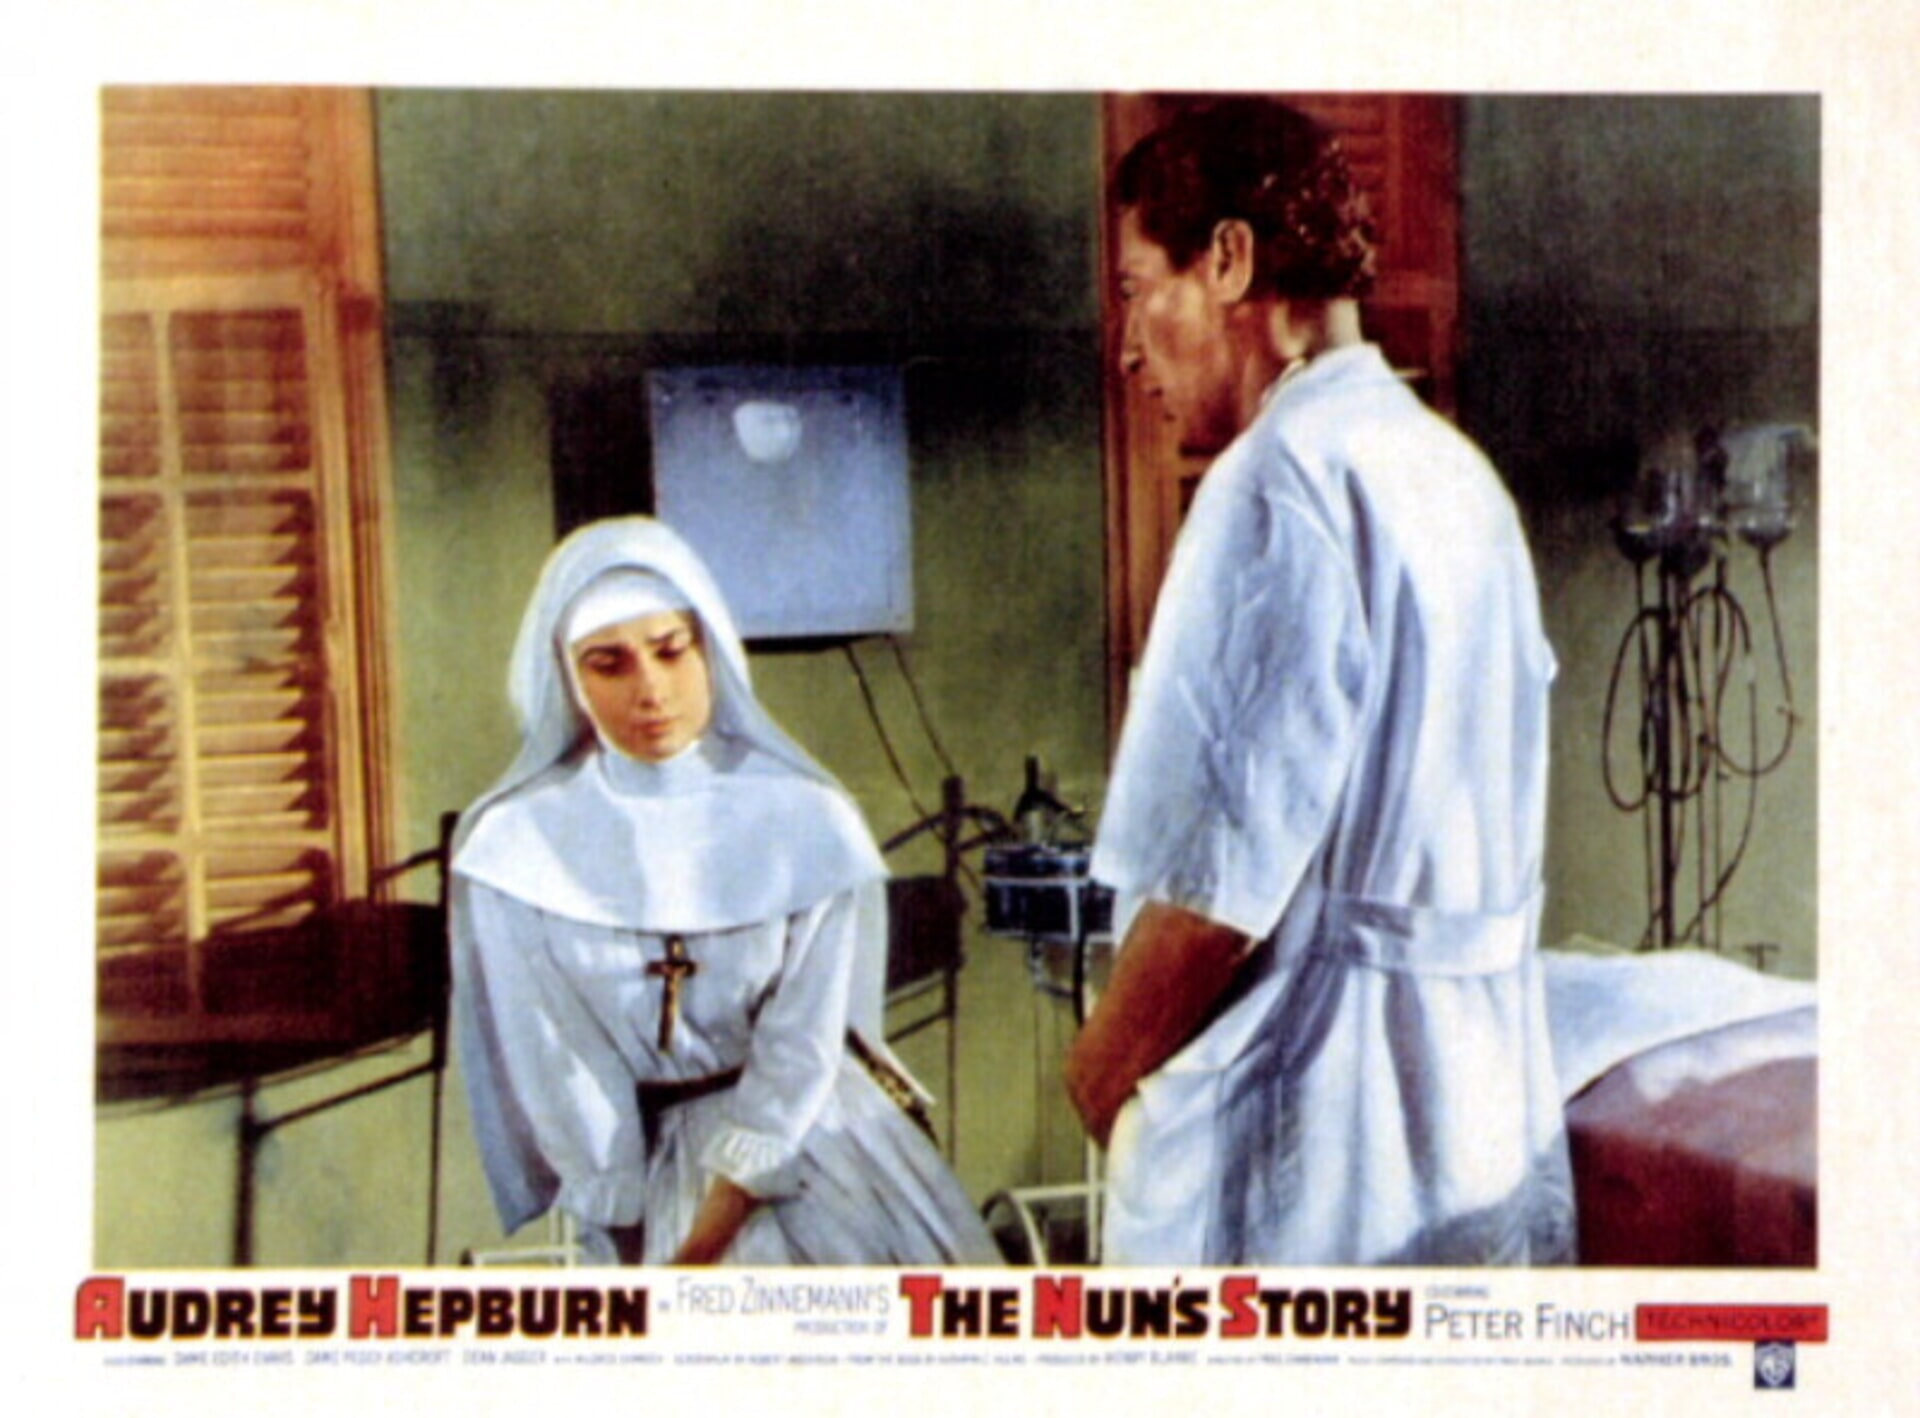 The Nun's Story - Poster 8